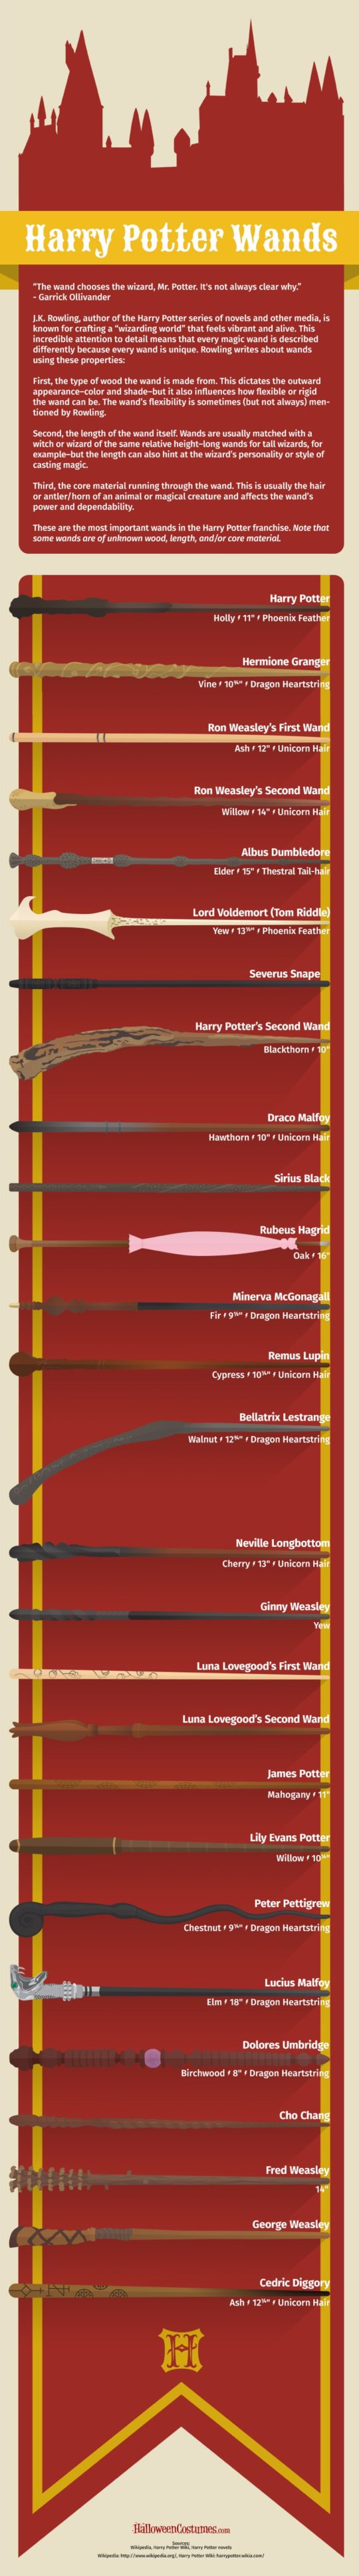 Harry Potter wands infographic